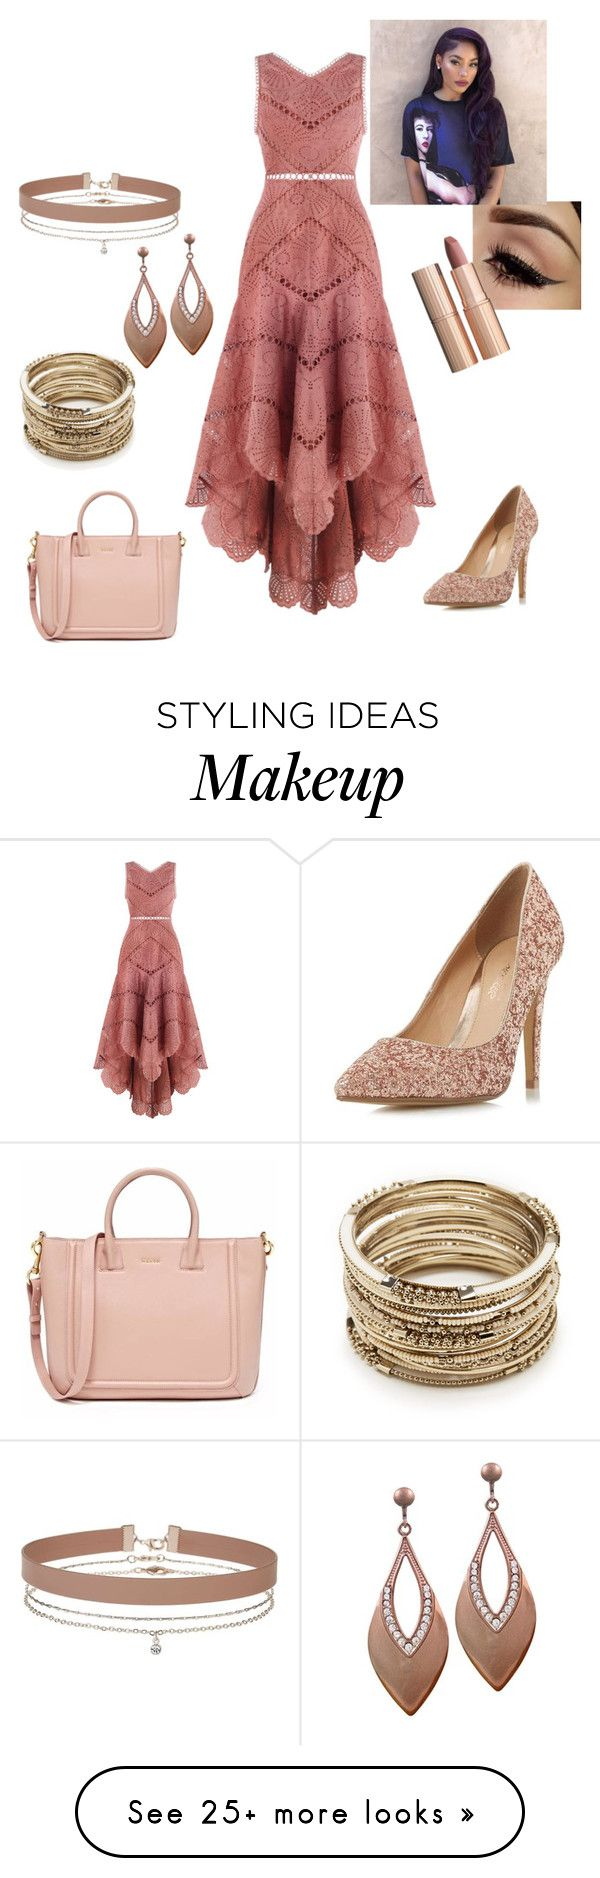 """Untitled #1002"" by angelrocky on Polyvore featuring Zimmermann, Head Over Heels by Dune, Sole Society, Miss Selfridge and Charlotte Tilbury"